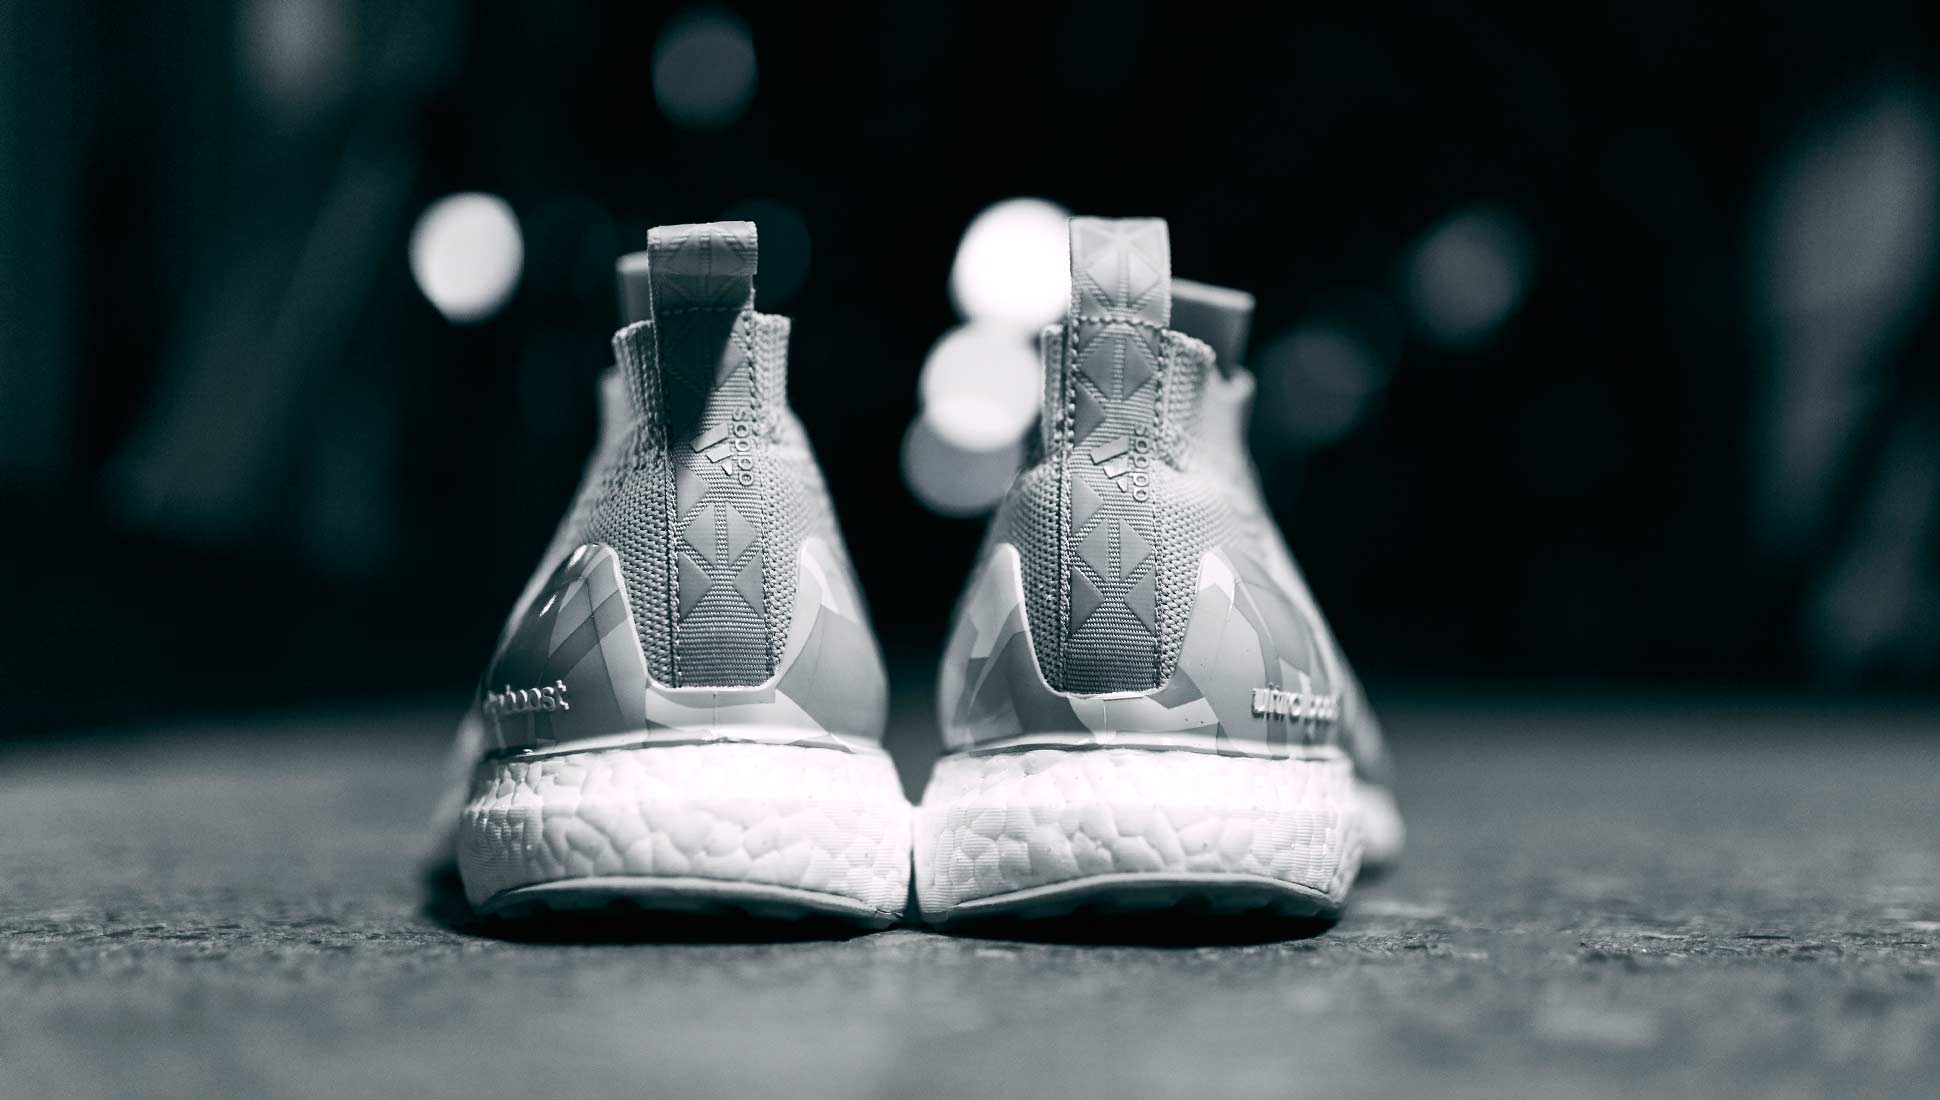 chaussures-lifestyle-adidas-ace-16-purecontrol-ultraboost-grey-camo-img4